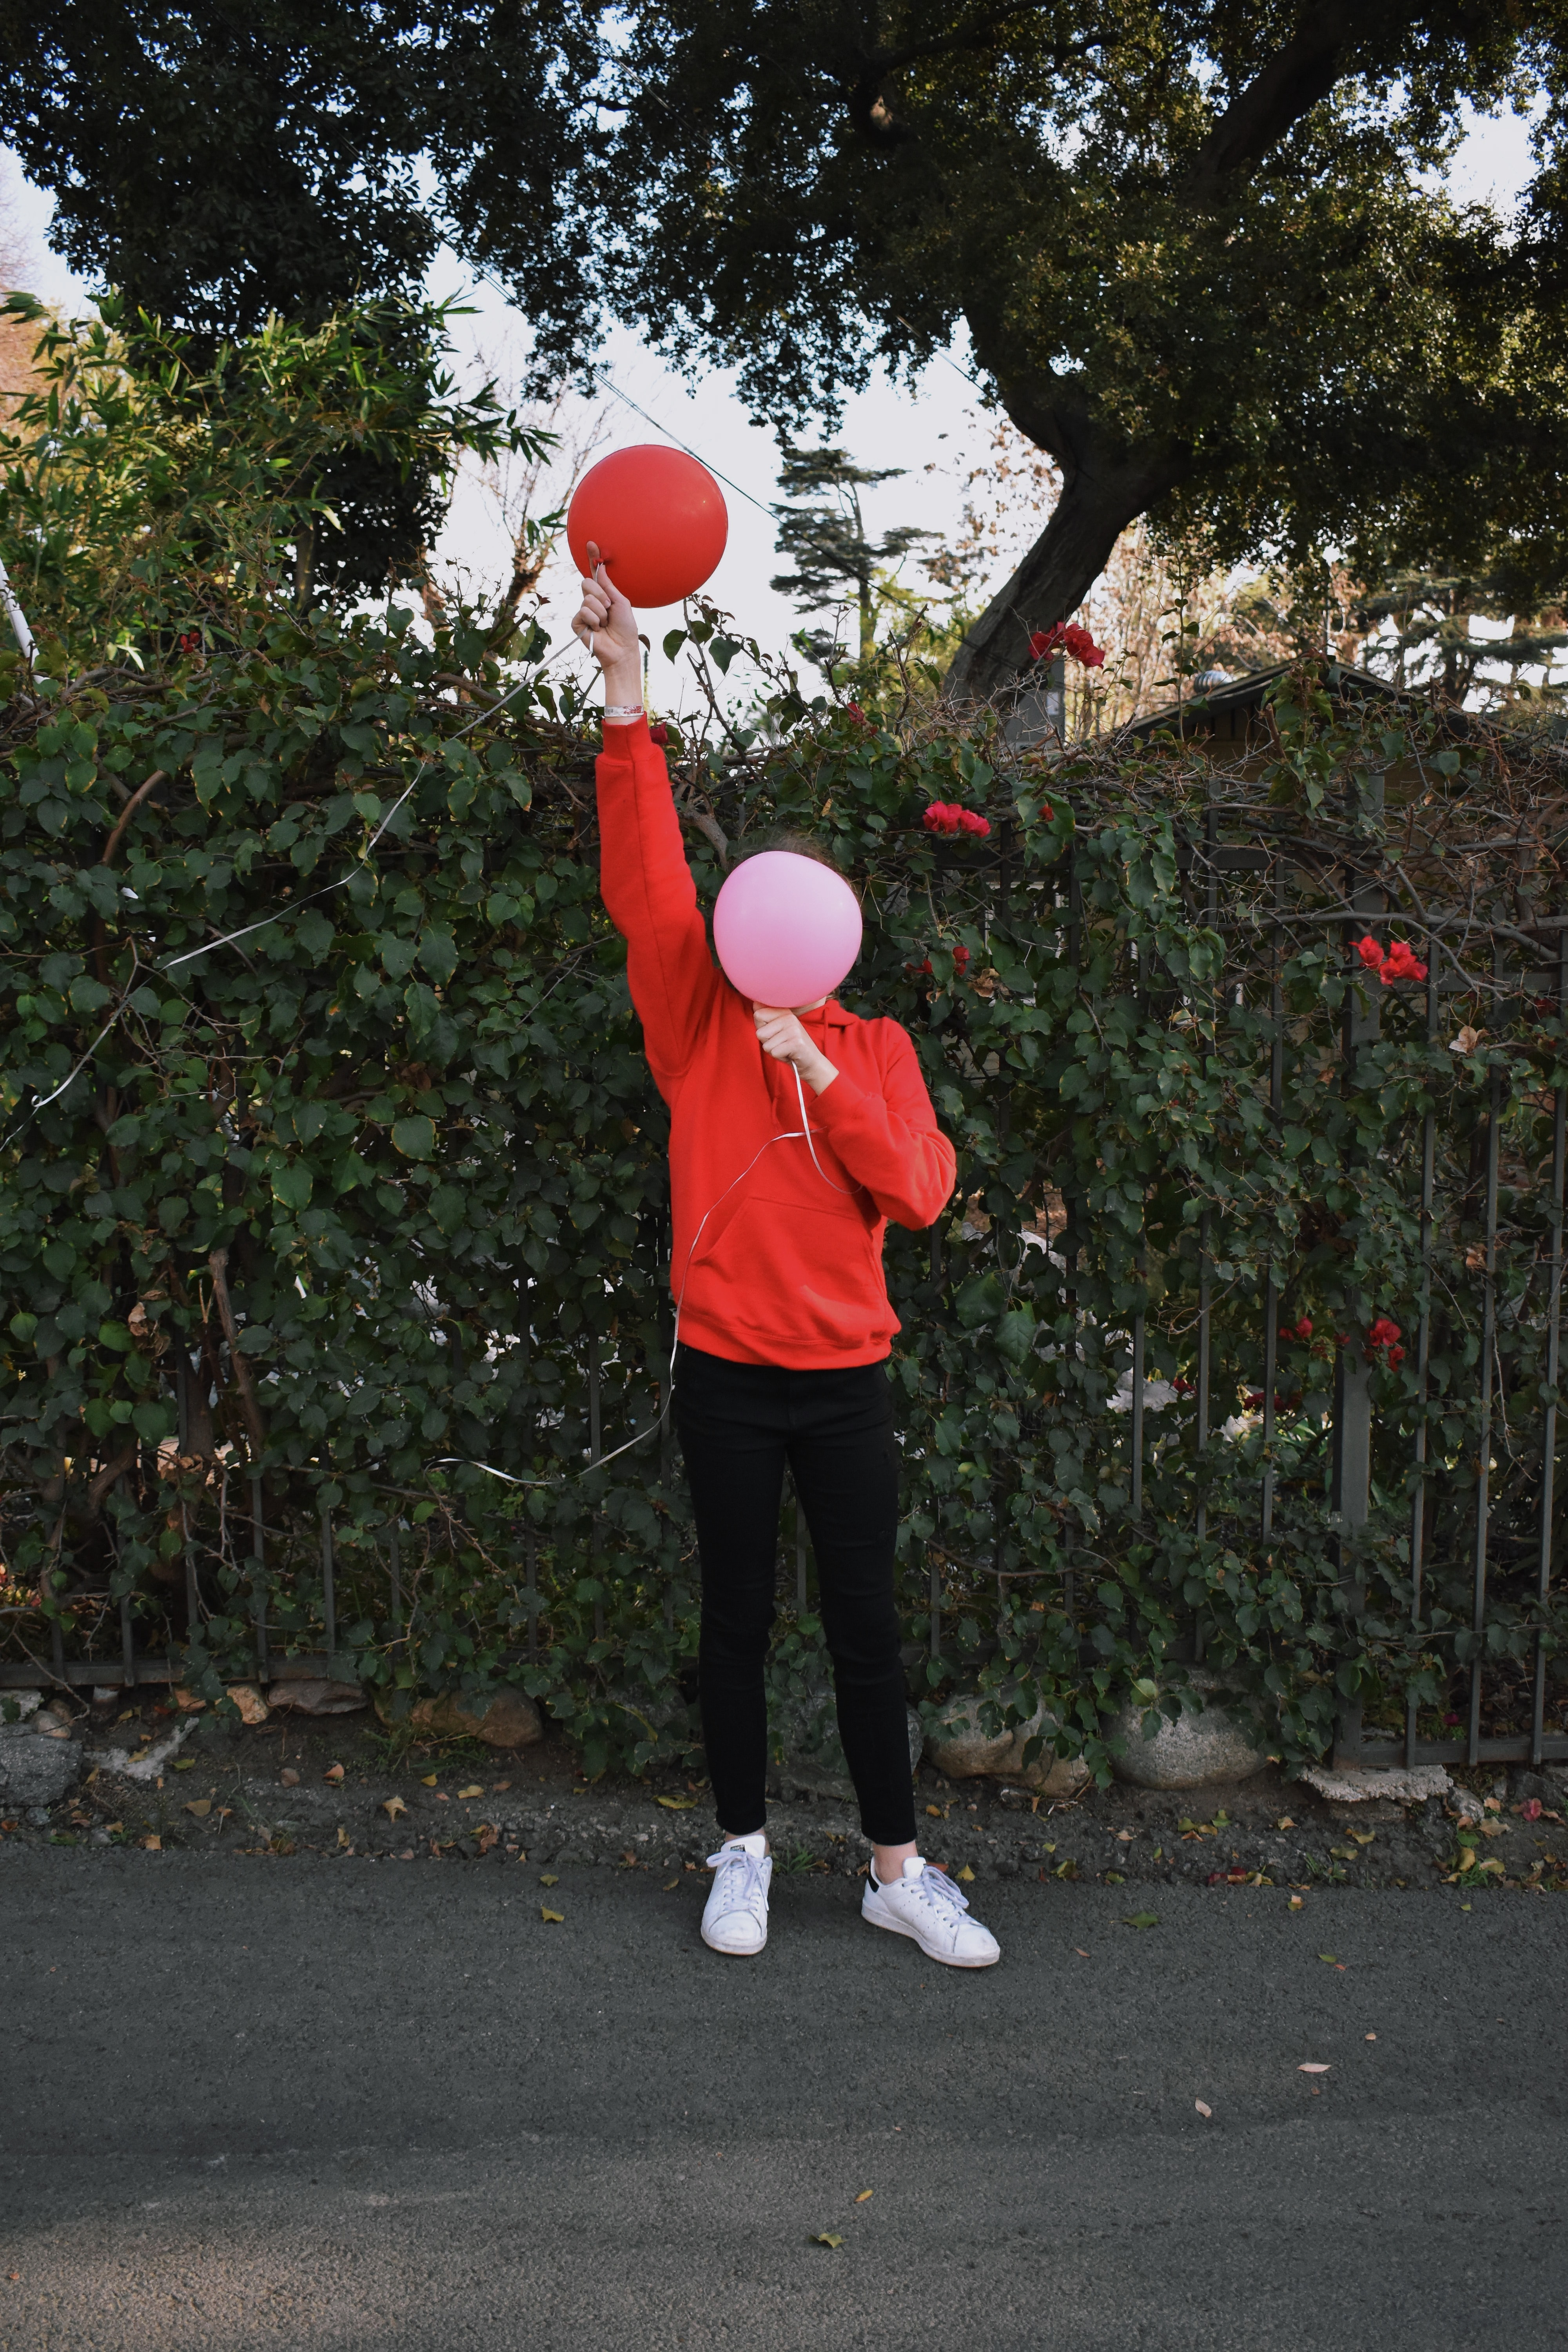 person holding pink and red balloon outdoors